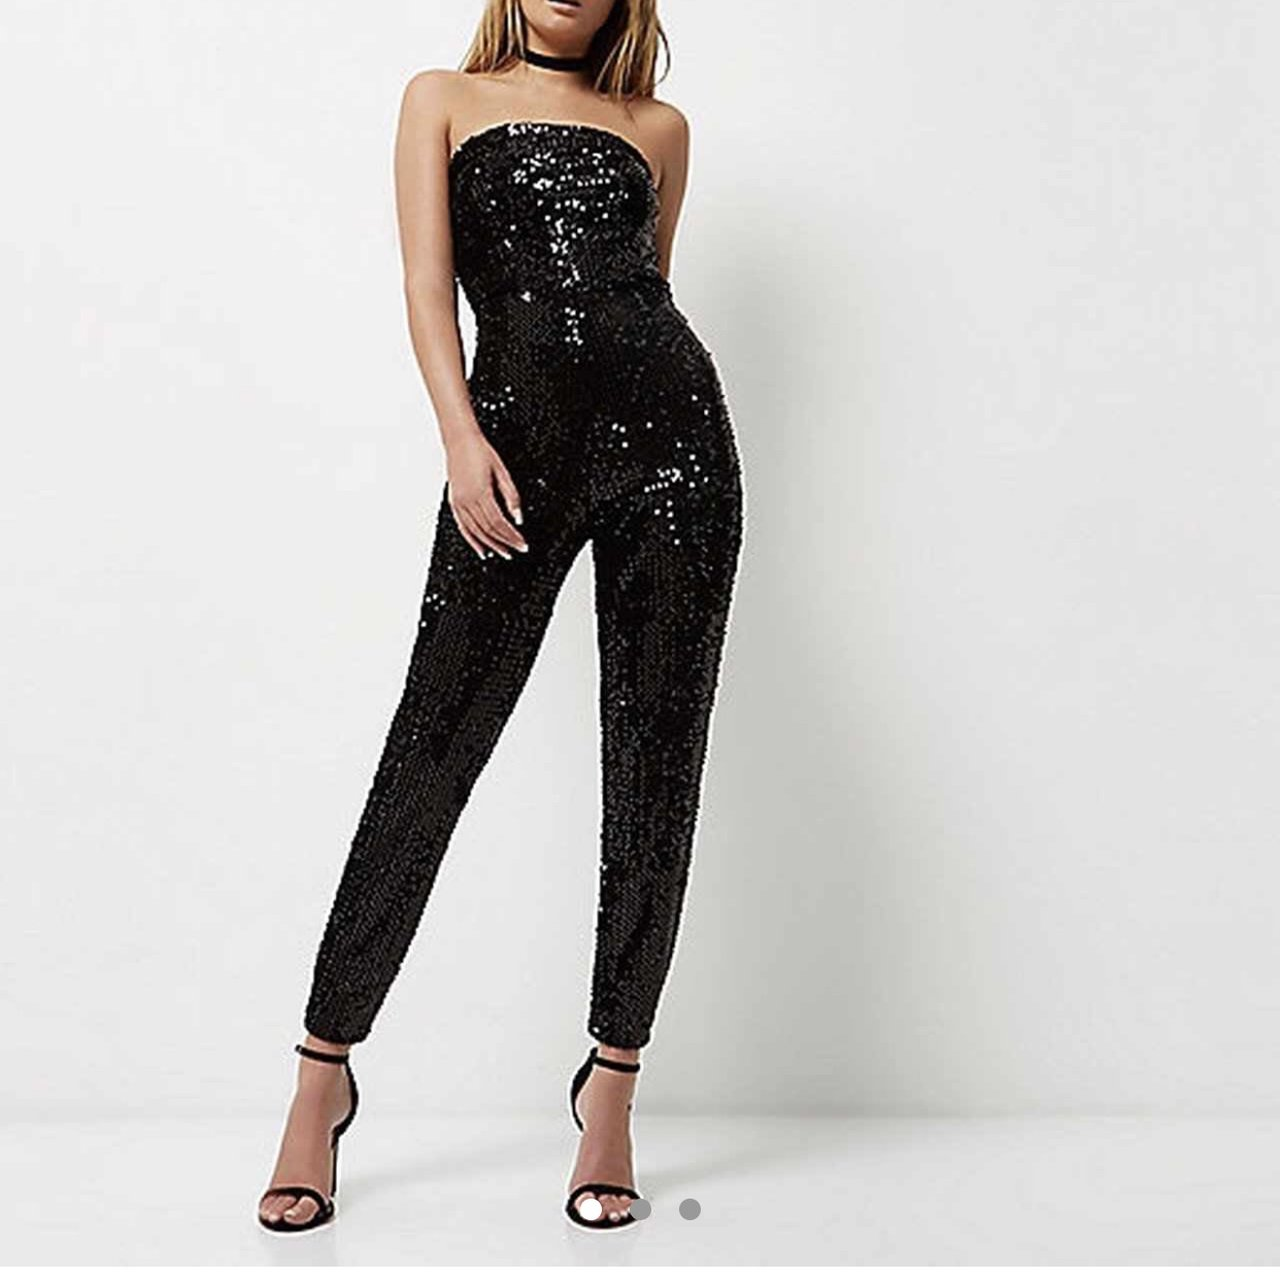 42781a5f1c5 £10. PRETTY LITTLE THING BLACK BODYCON. £15. Absolutely gorgeous black  sequin bandeau